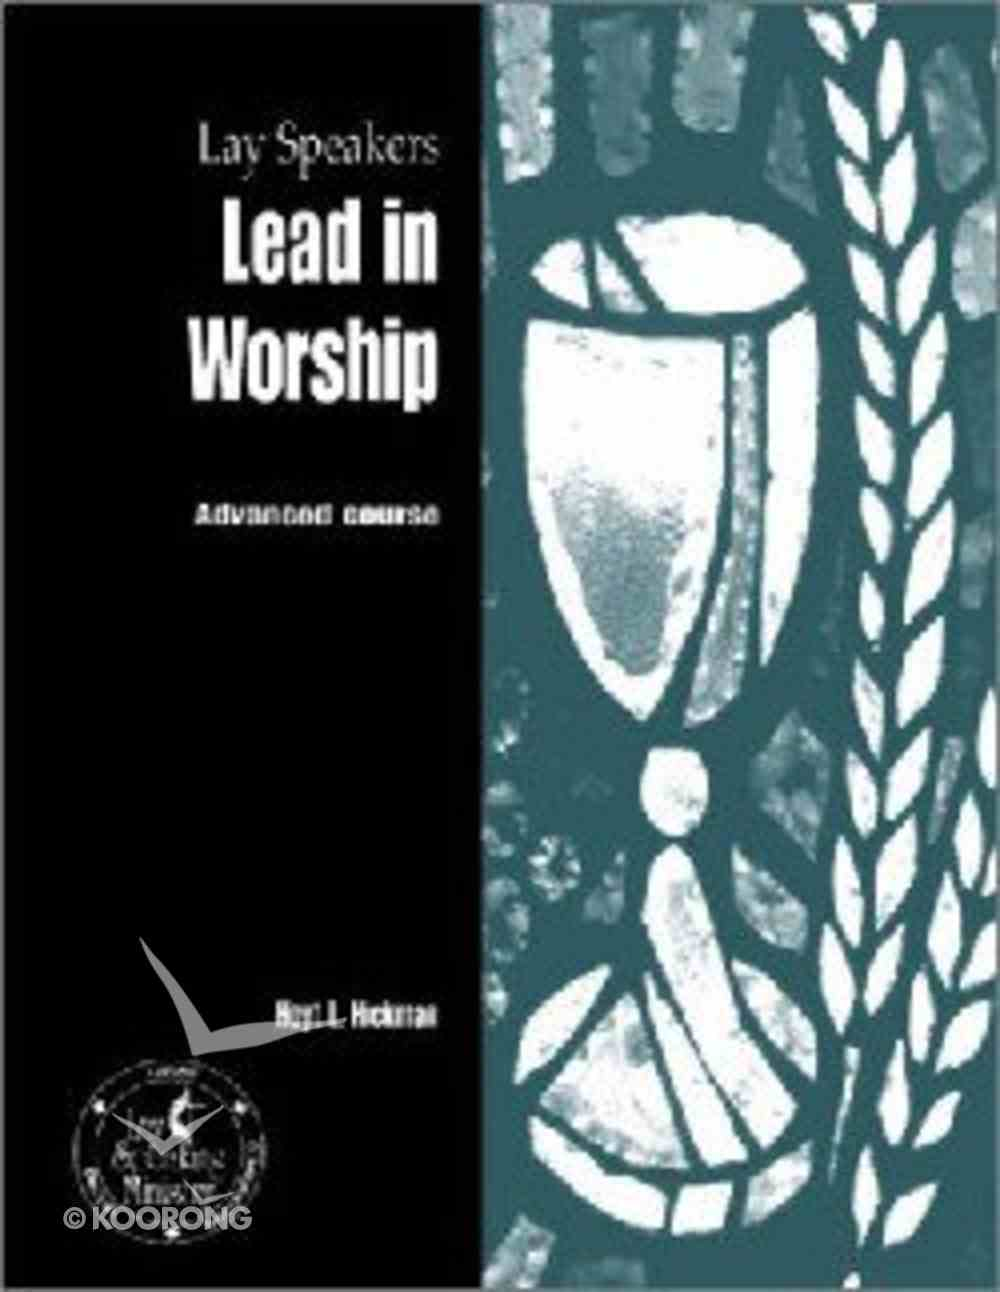 Lay Speakers Lead in Worship (Lay Speakers Series) Booklet